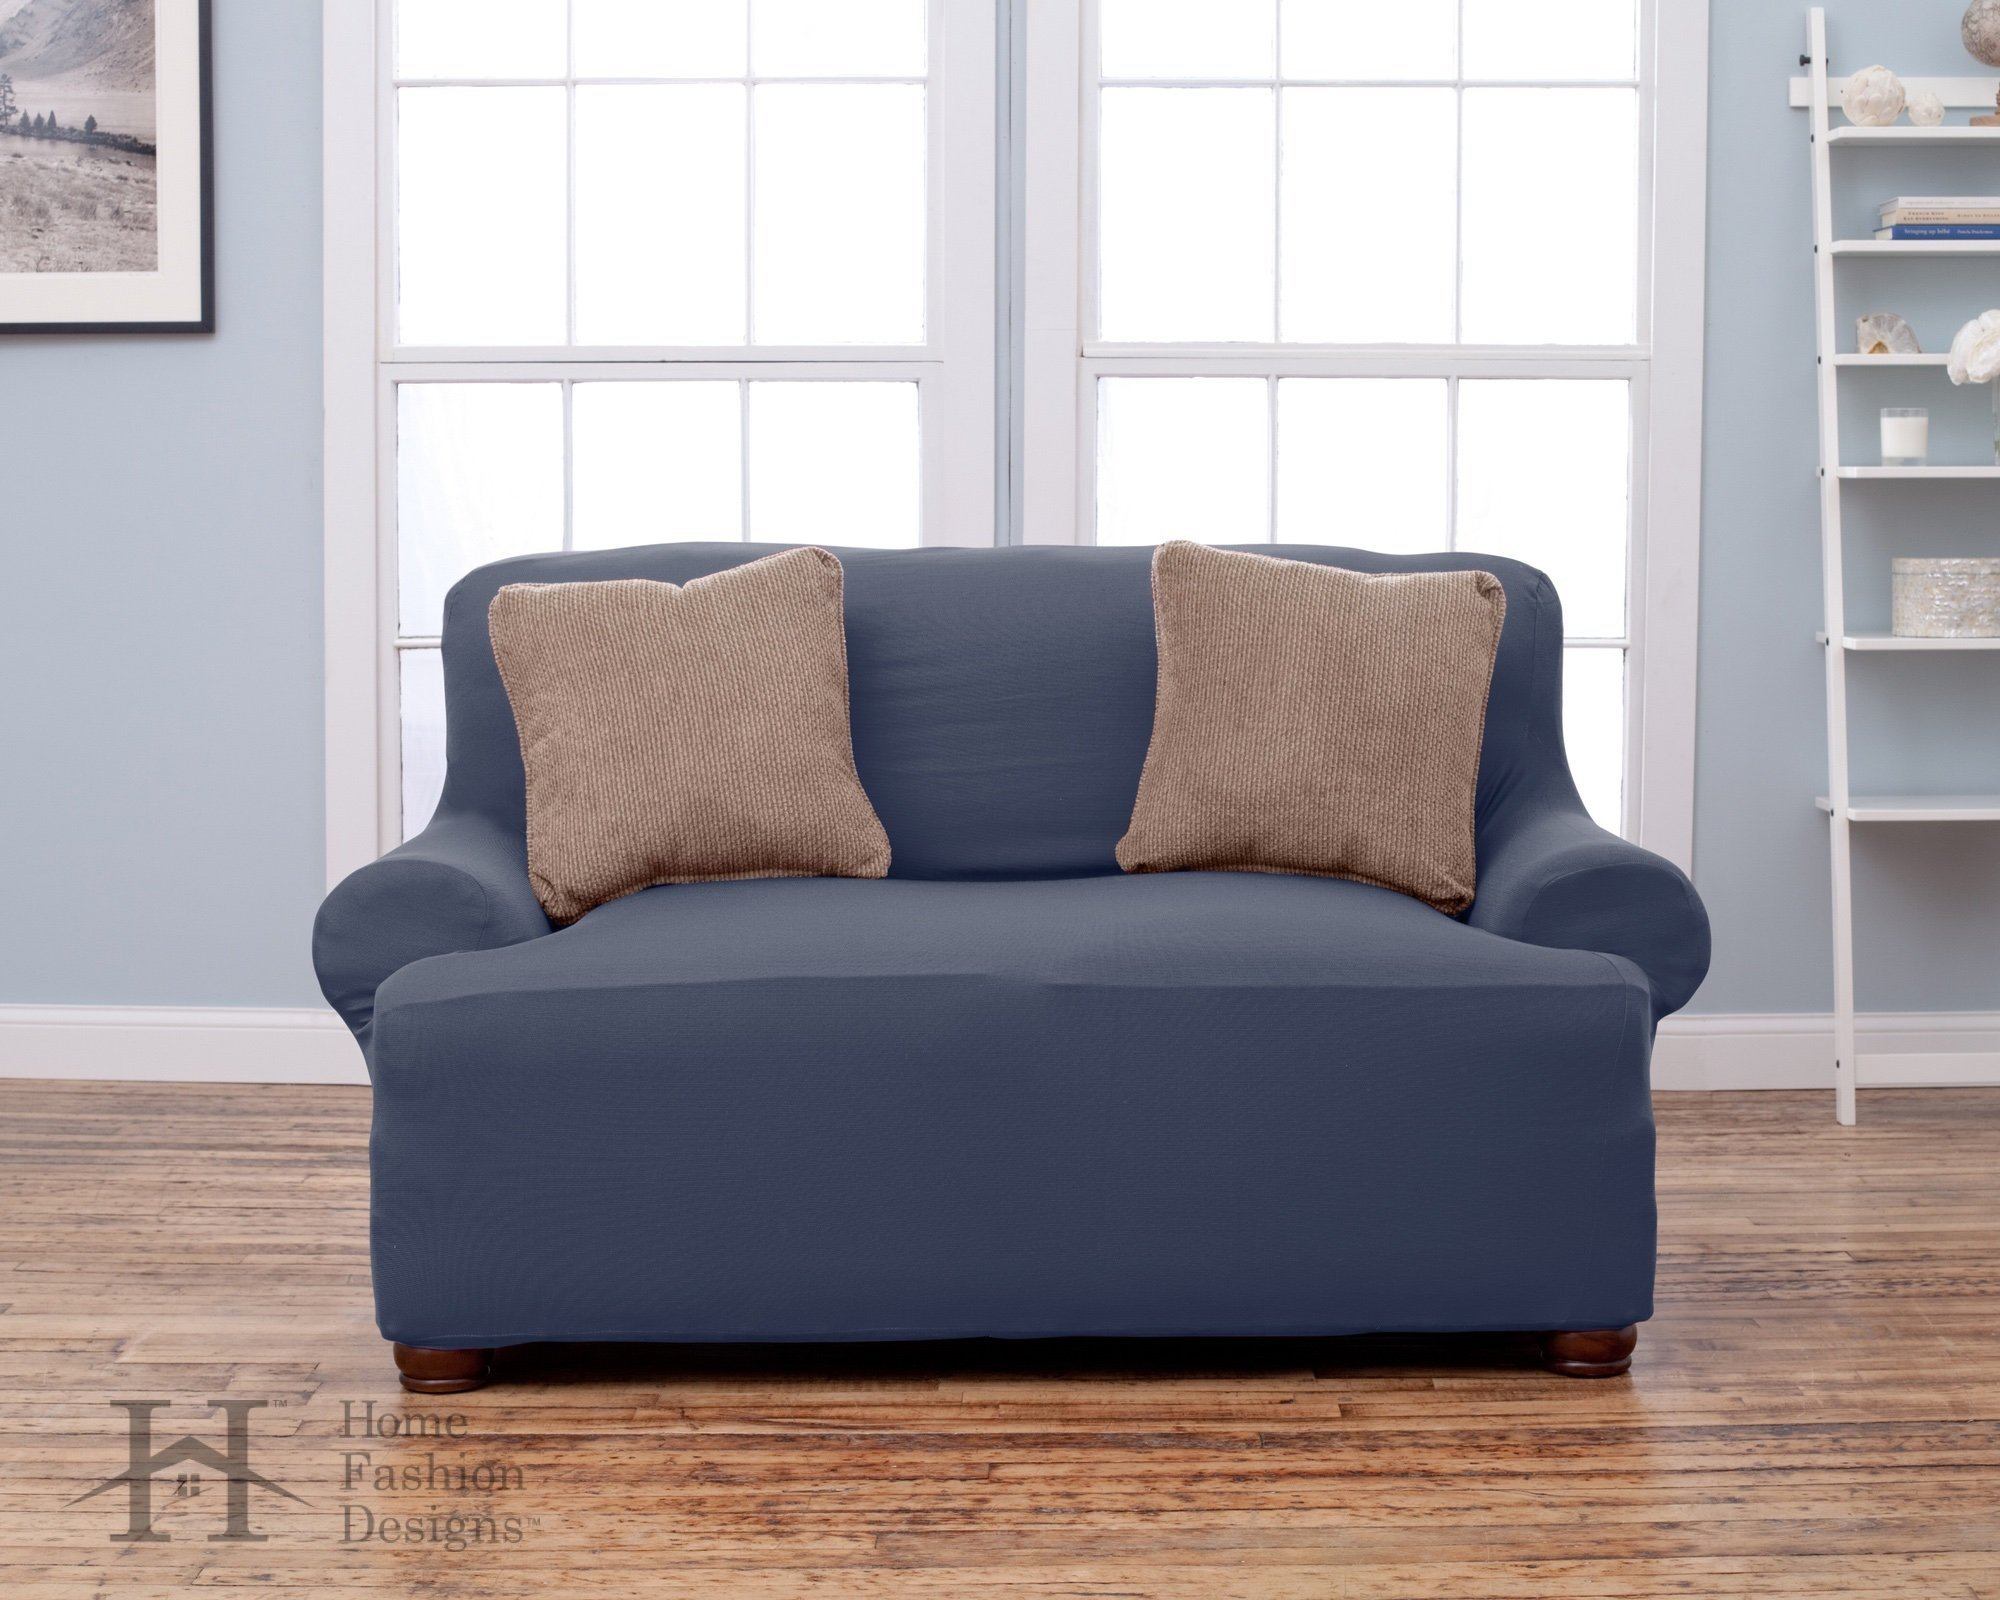 Home Fashion Designs Form Fit, Slip Resistant, Stylish Furniture Shield/Protector Featuring Lightweight Corduroy Fabric. Lucia Collection Basic Strapless Slipcover. By Brand. (Loveseat, Grey)